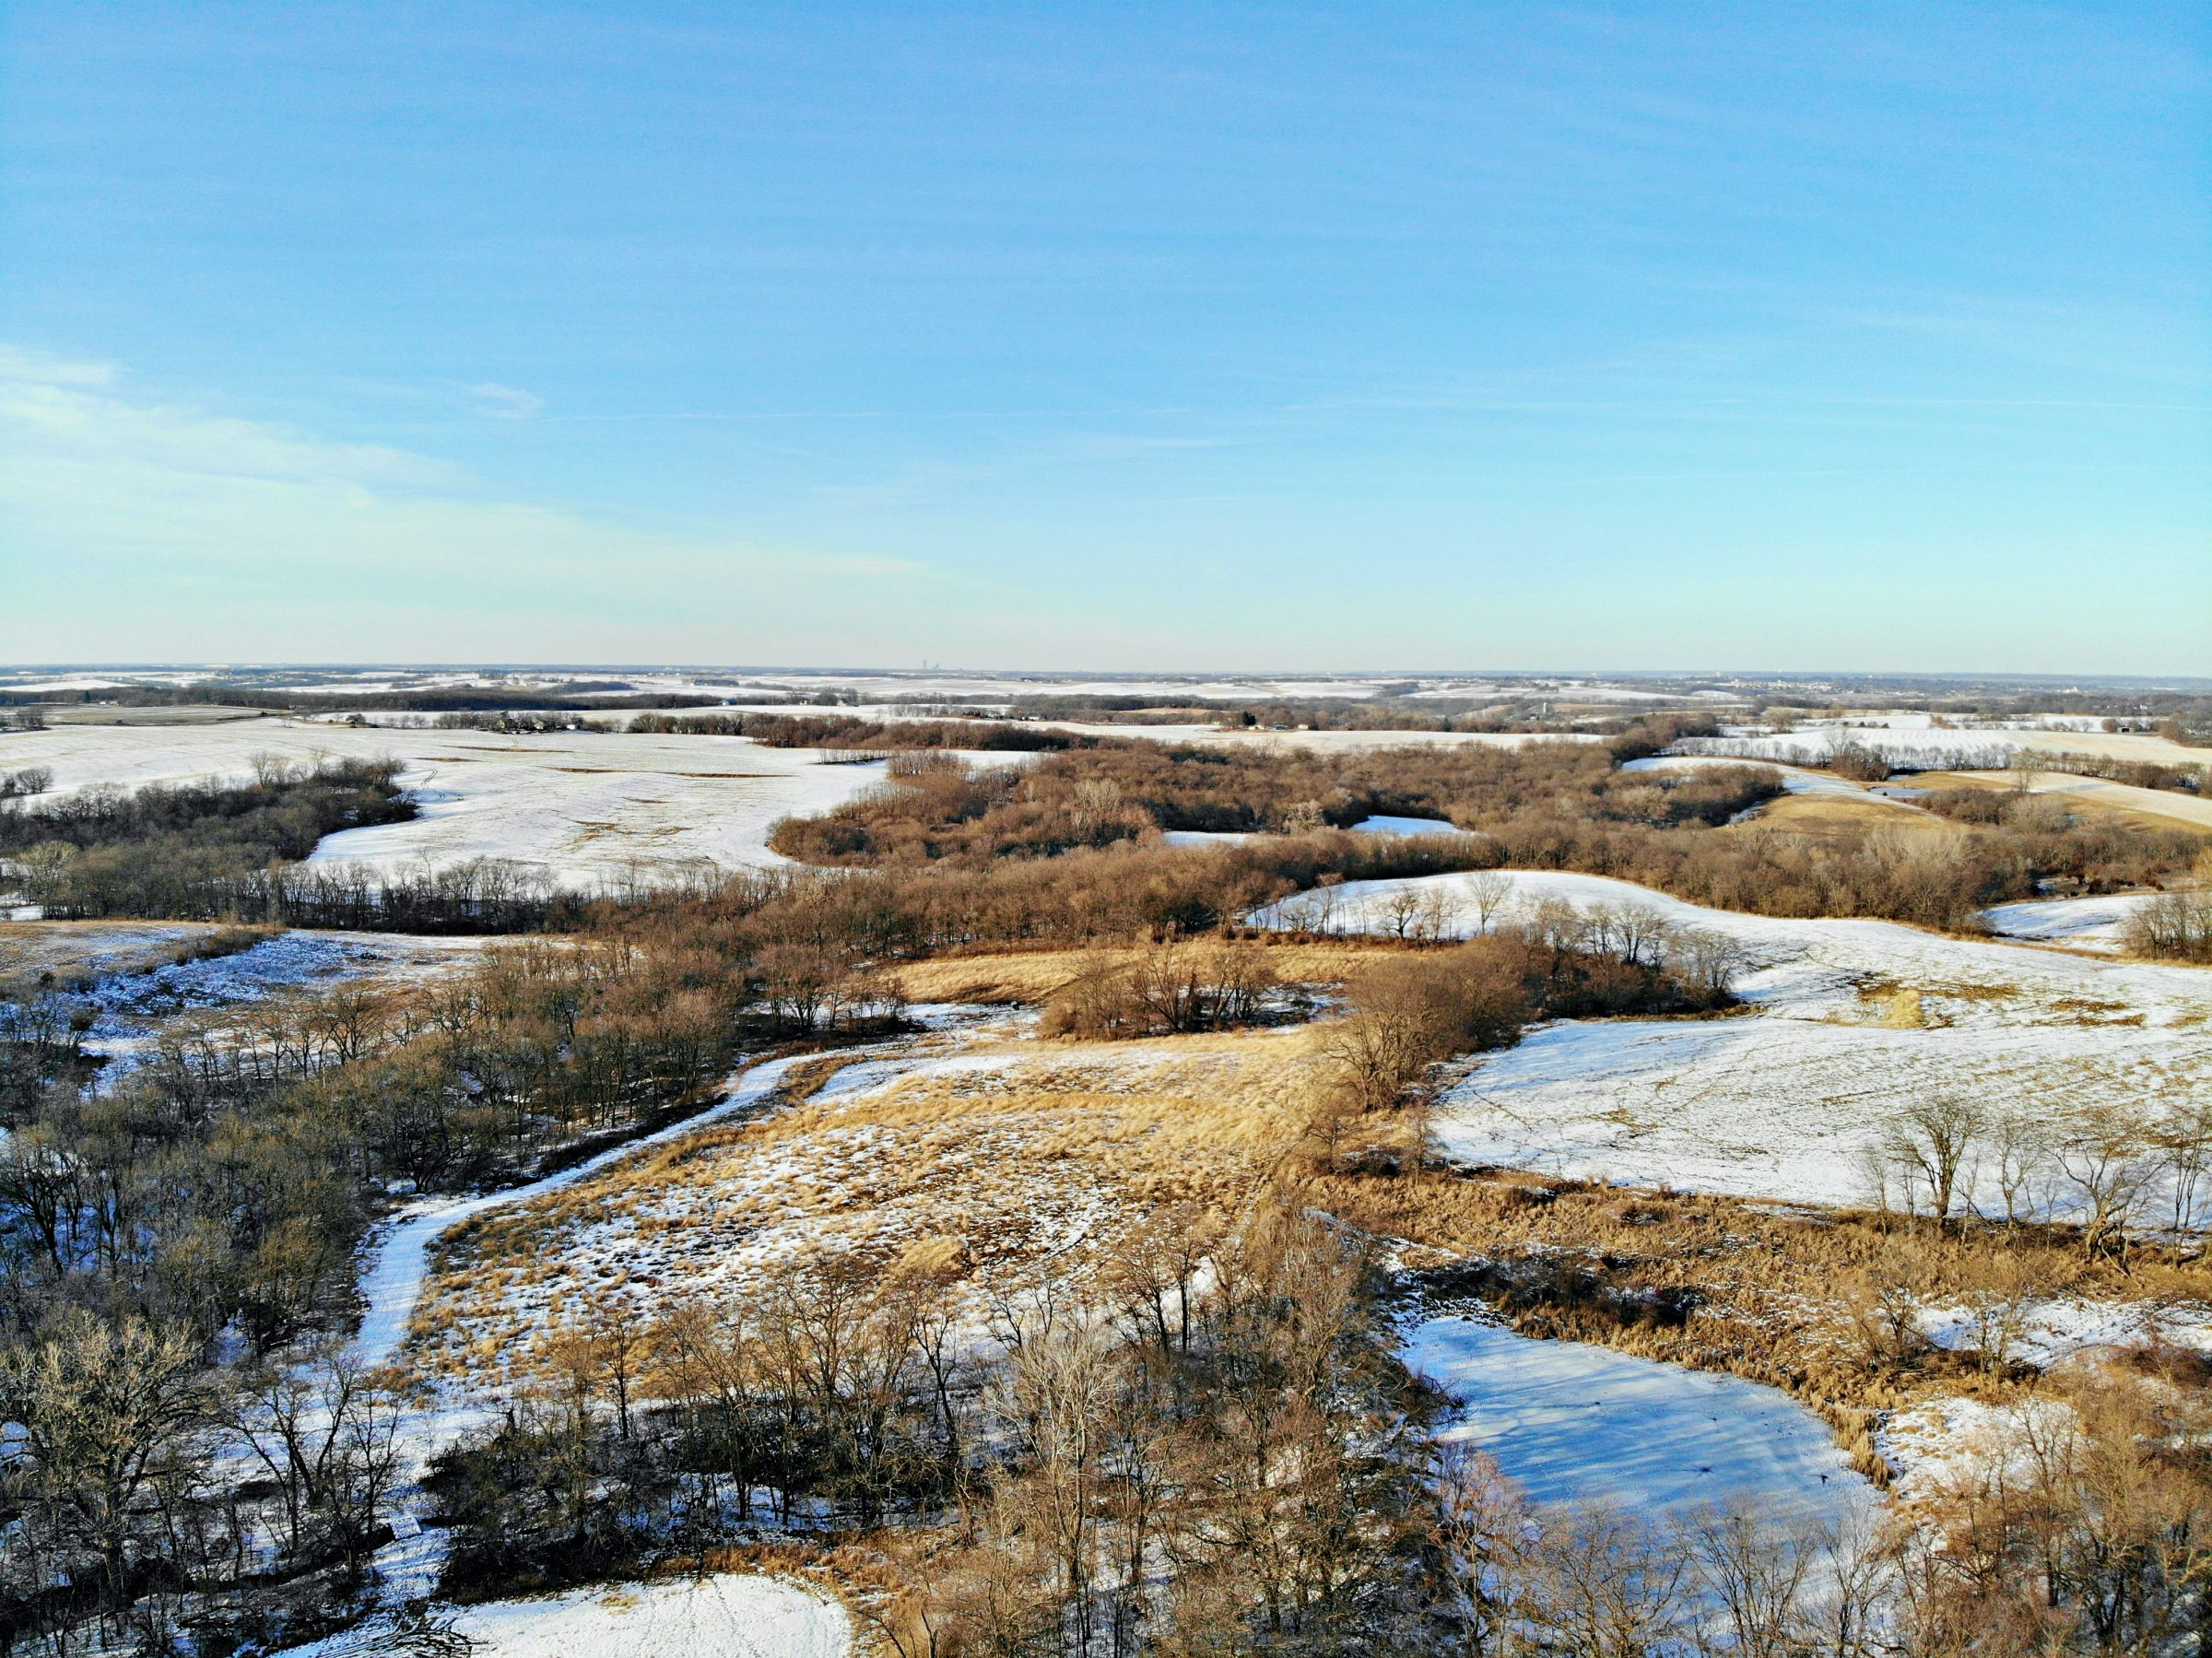 land-warren-county-iowa-21-acres-listing-number-15324-4-2021-01-18-024156.jpg